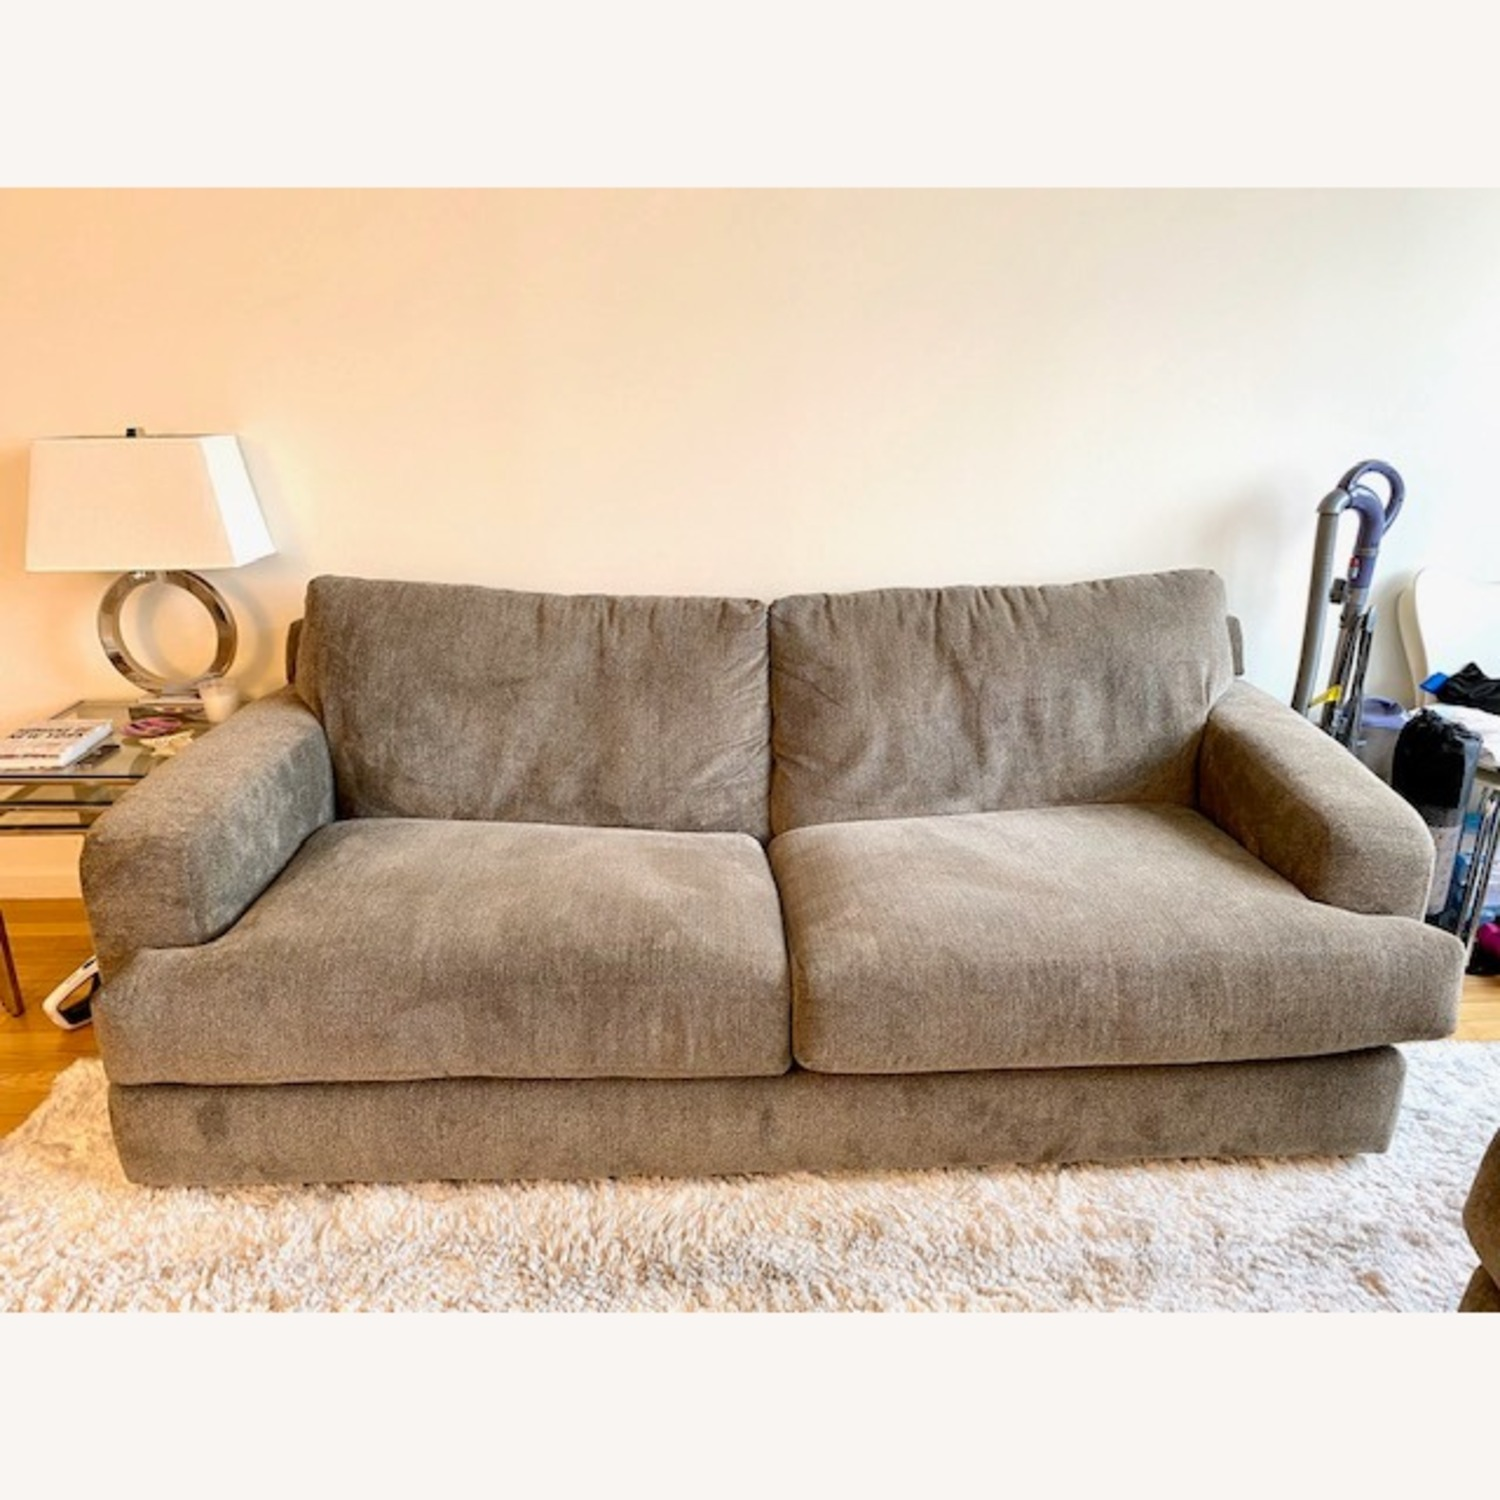 Raymour & Flanigan Grey 2 Seater Sofa - image-2